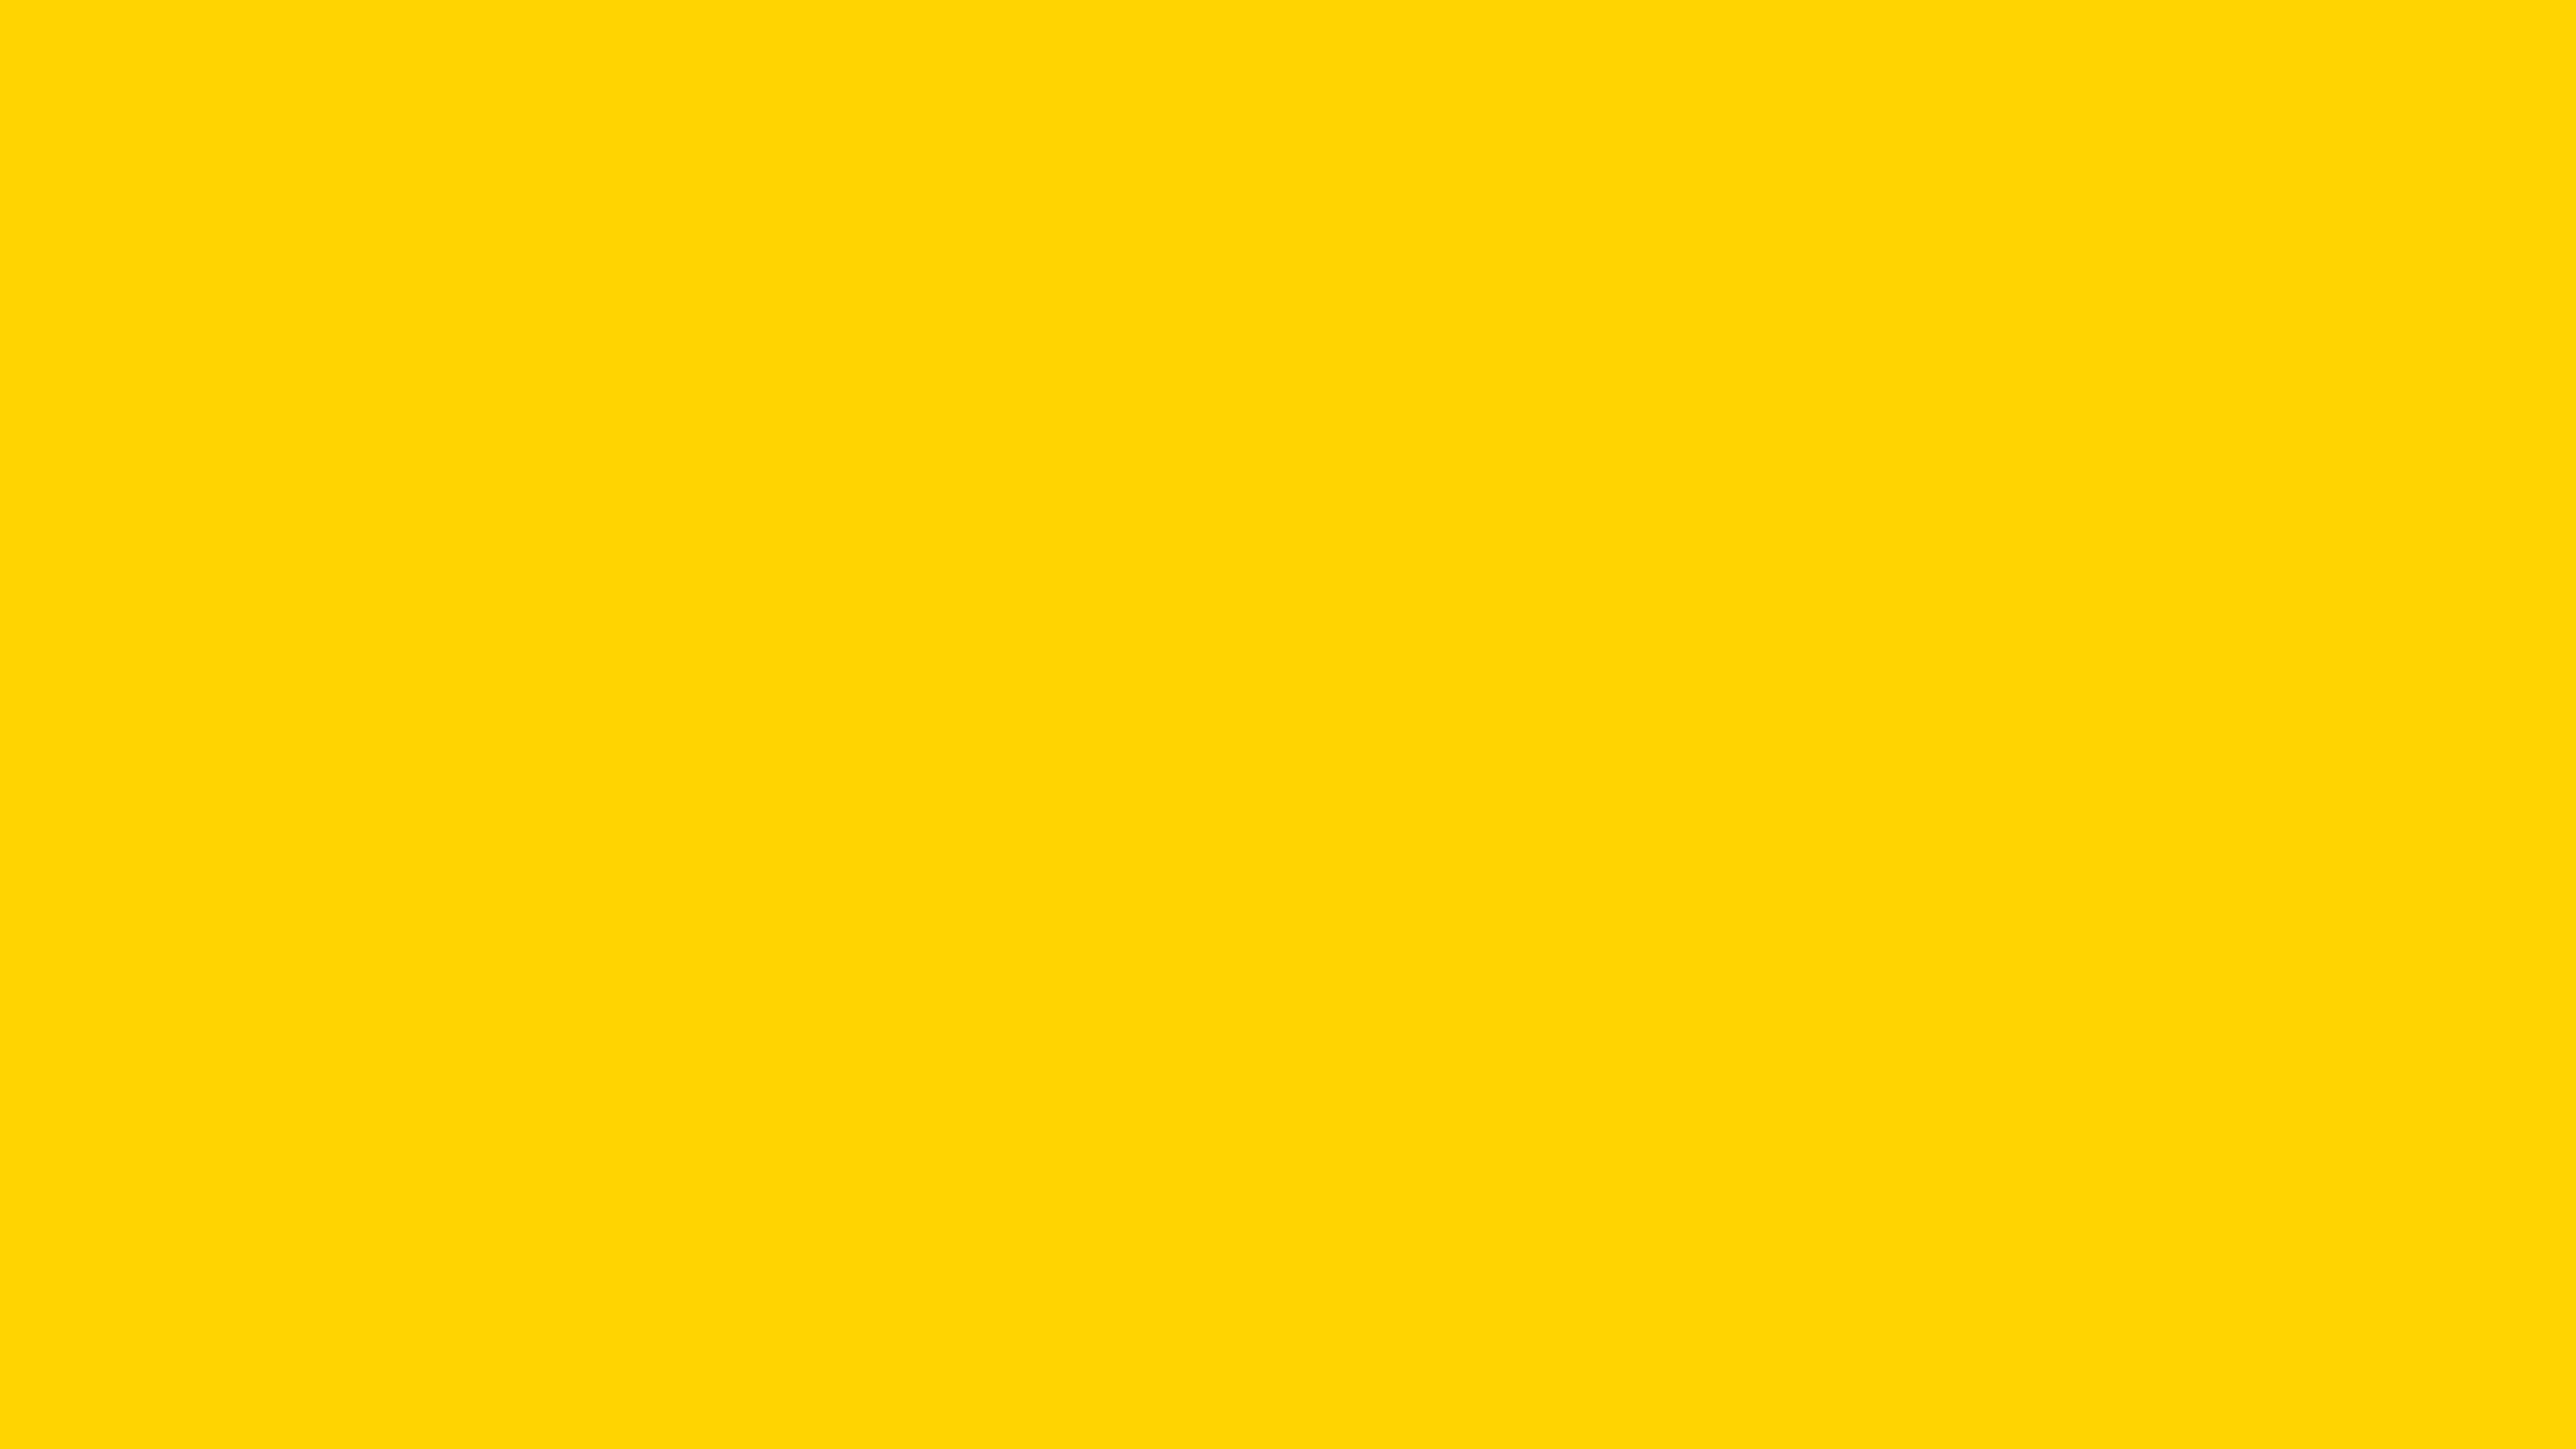 3840x2160 Cyber Yellow Solid Color Background